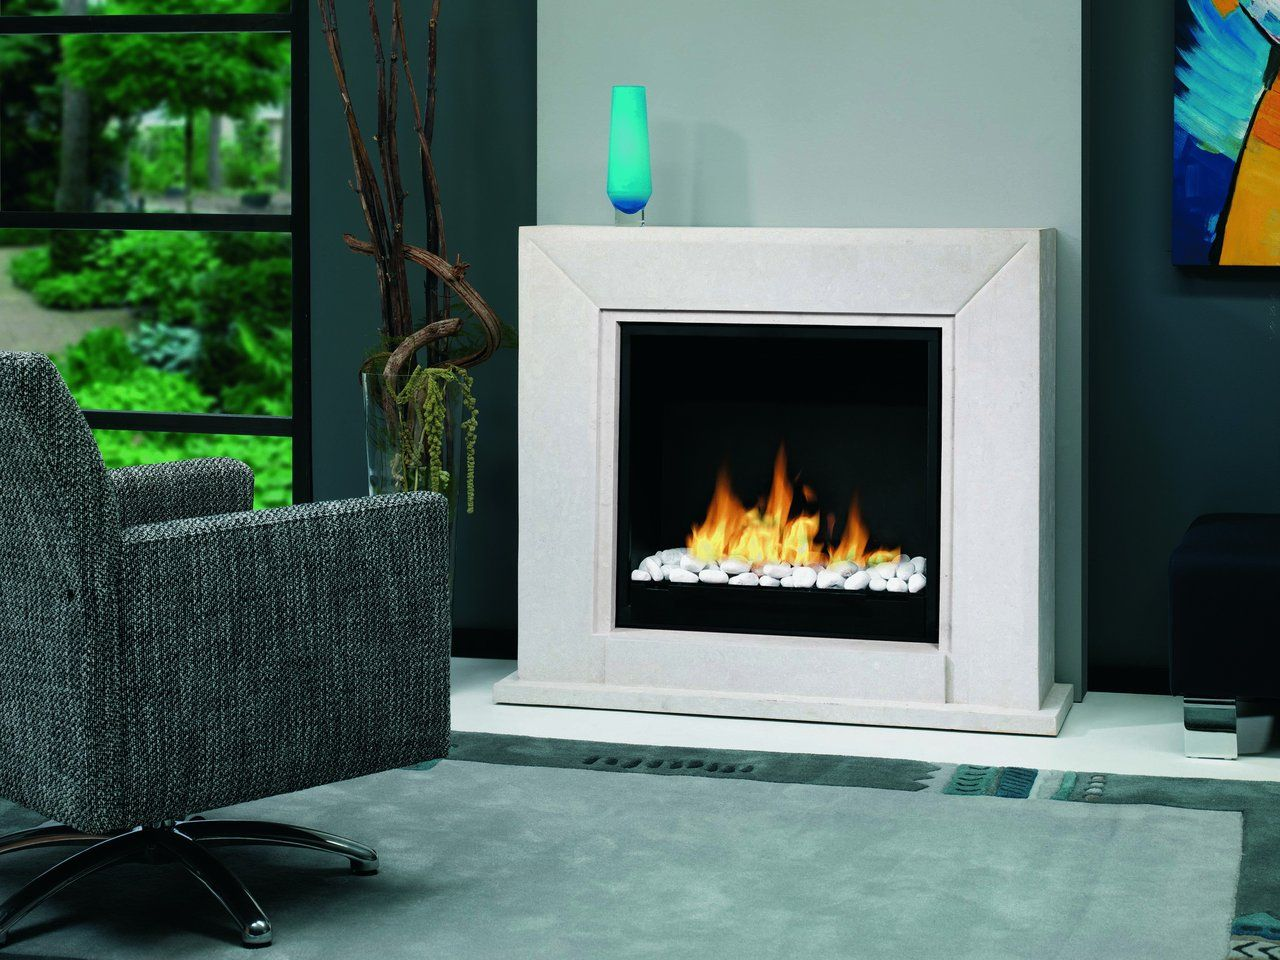 43 best offers floor standing bioethanol fireplaces images on